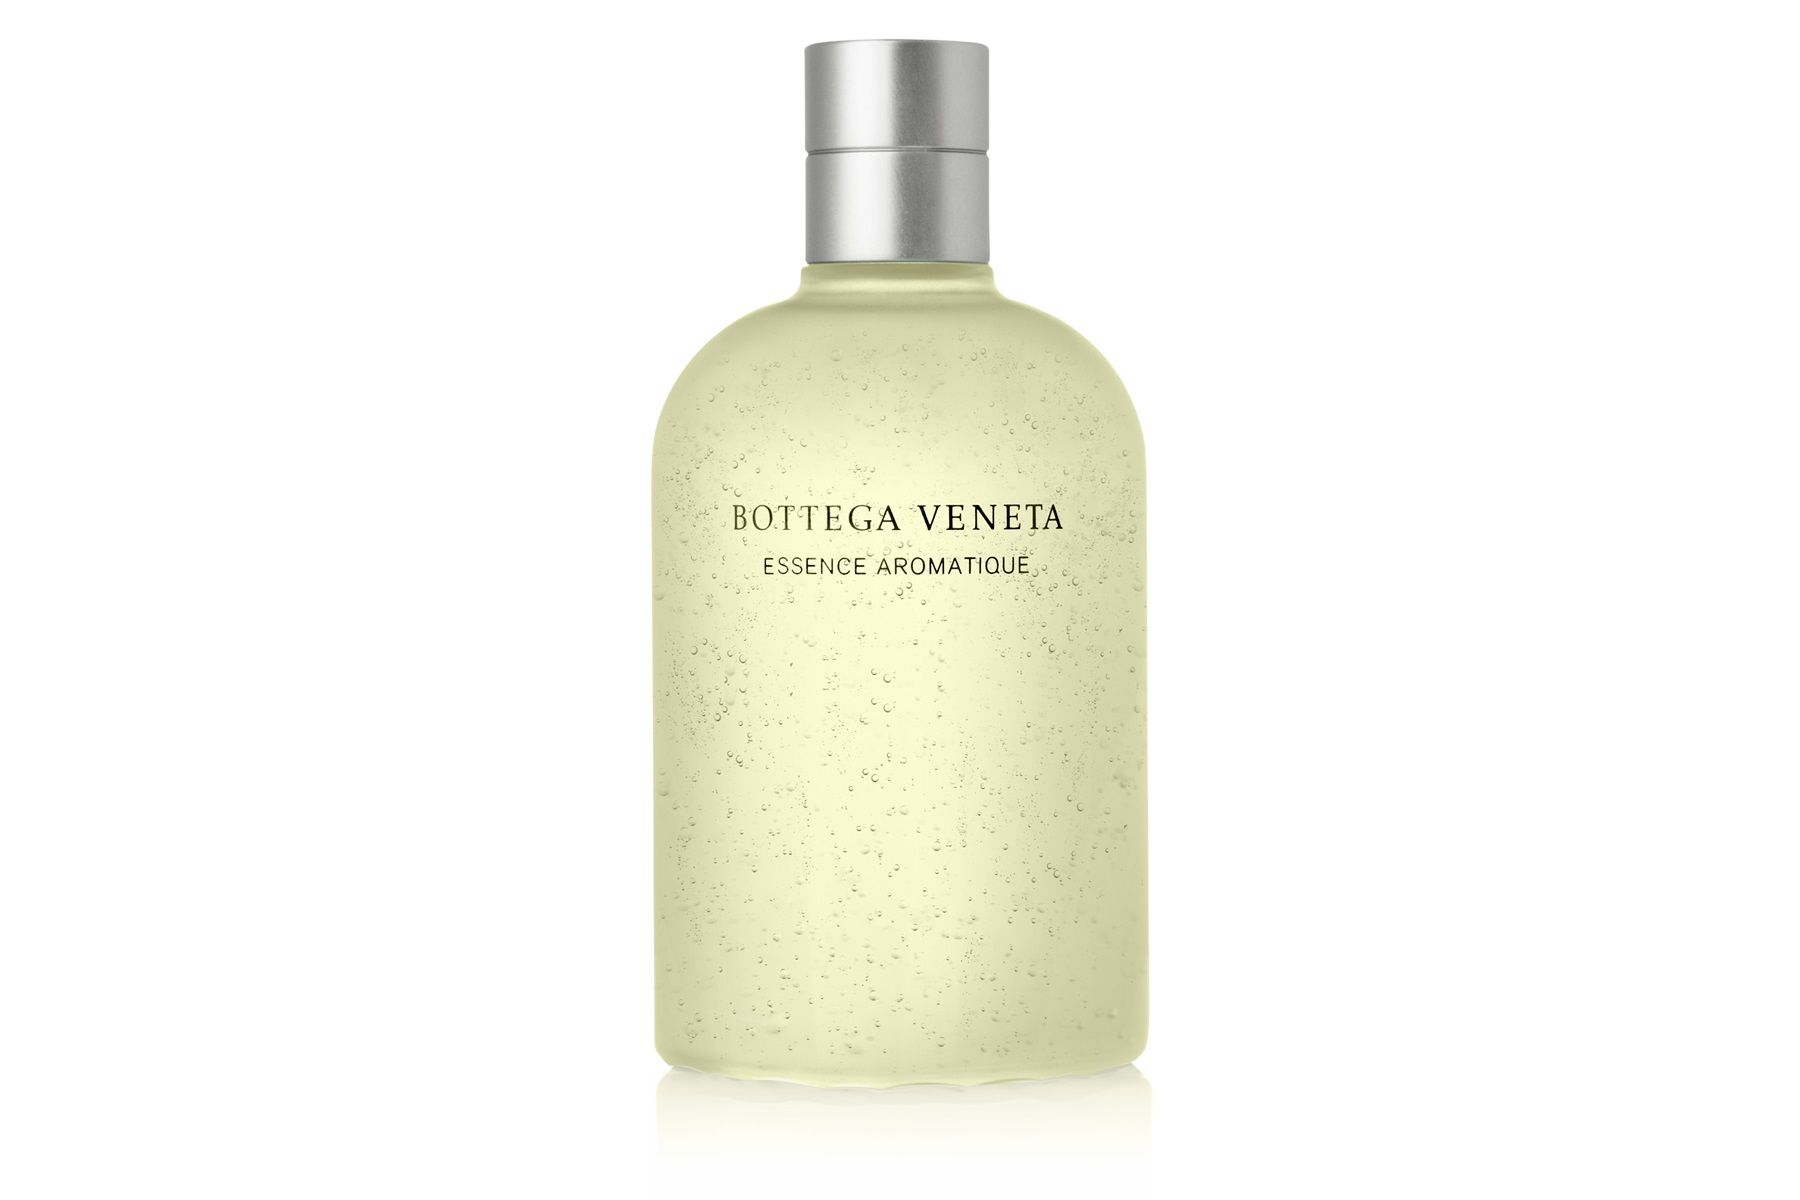 Bottega Veneta Bottega Veneta Essence Aromatique Scrub 200ml